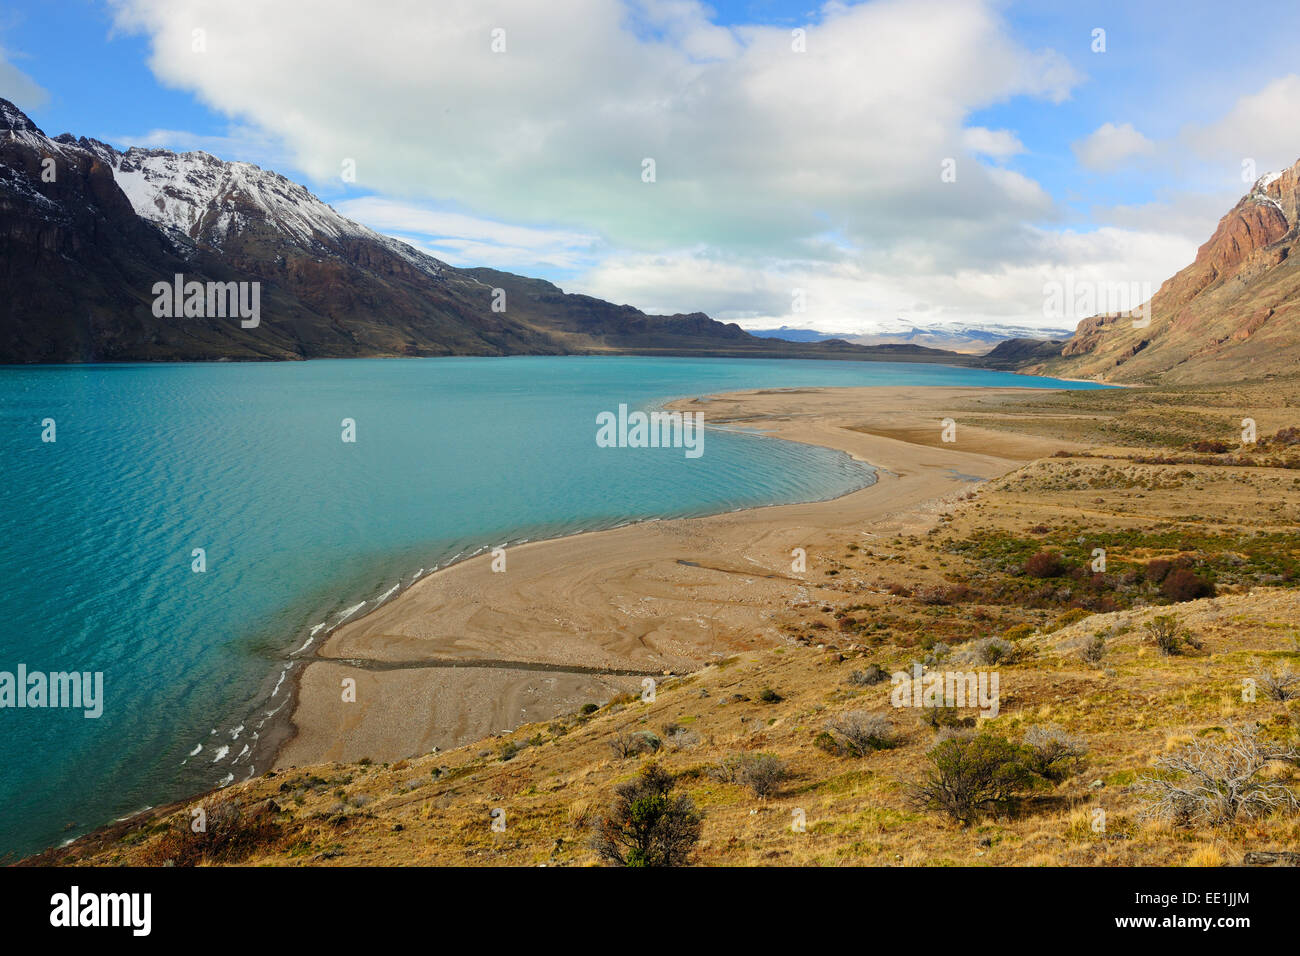 San Martin Lake, Santa Cruz, Patagonia, Argentina, South America - Stock Image